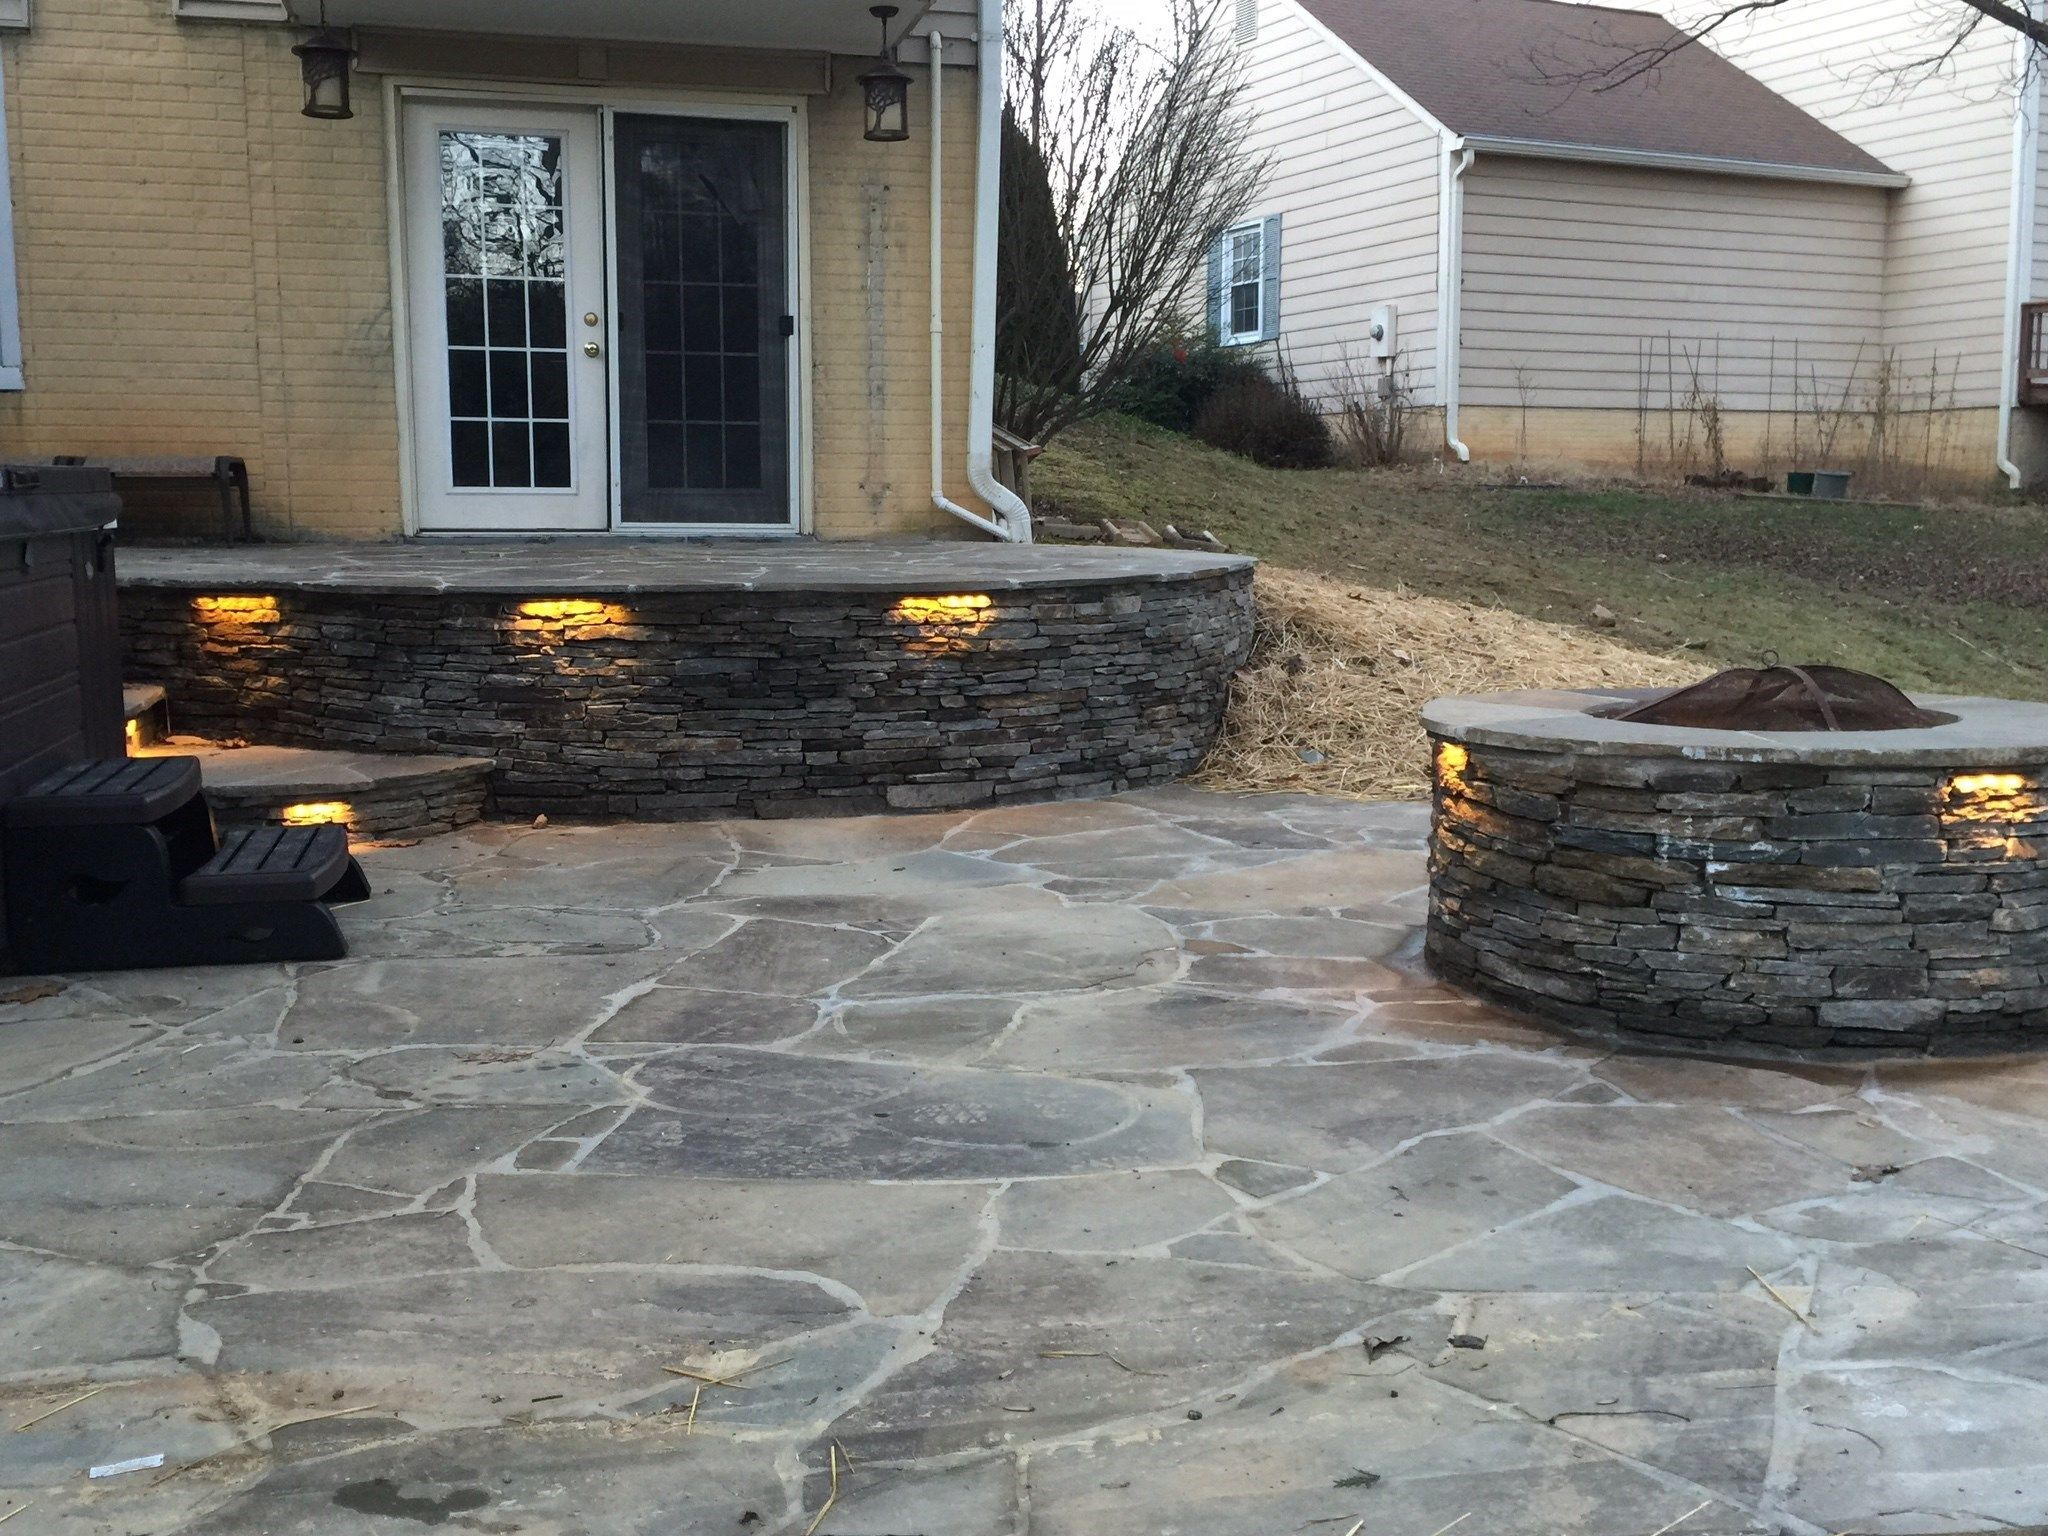 Flagstone patio with Hot tub. - Picture 2020